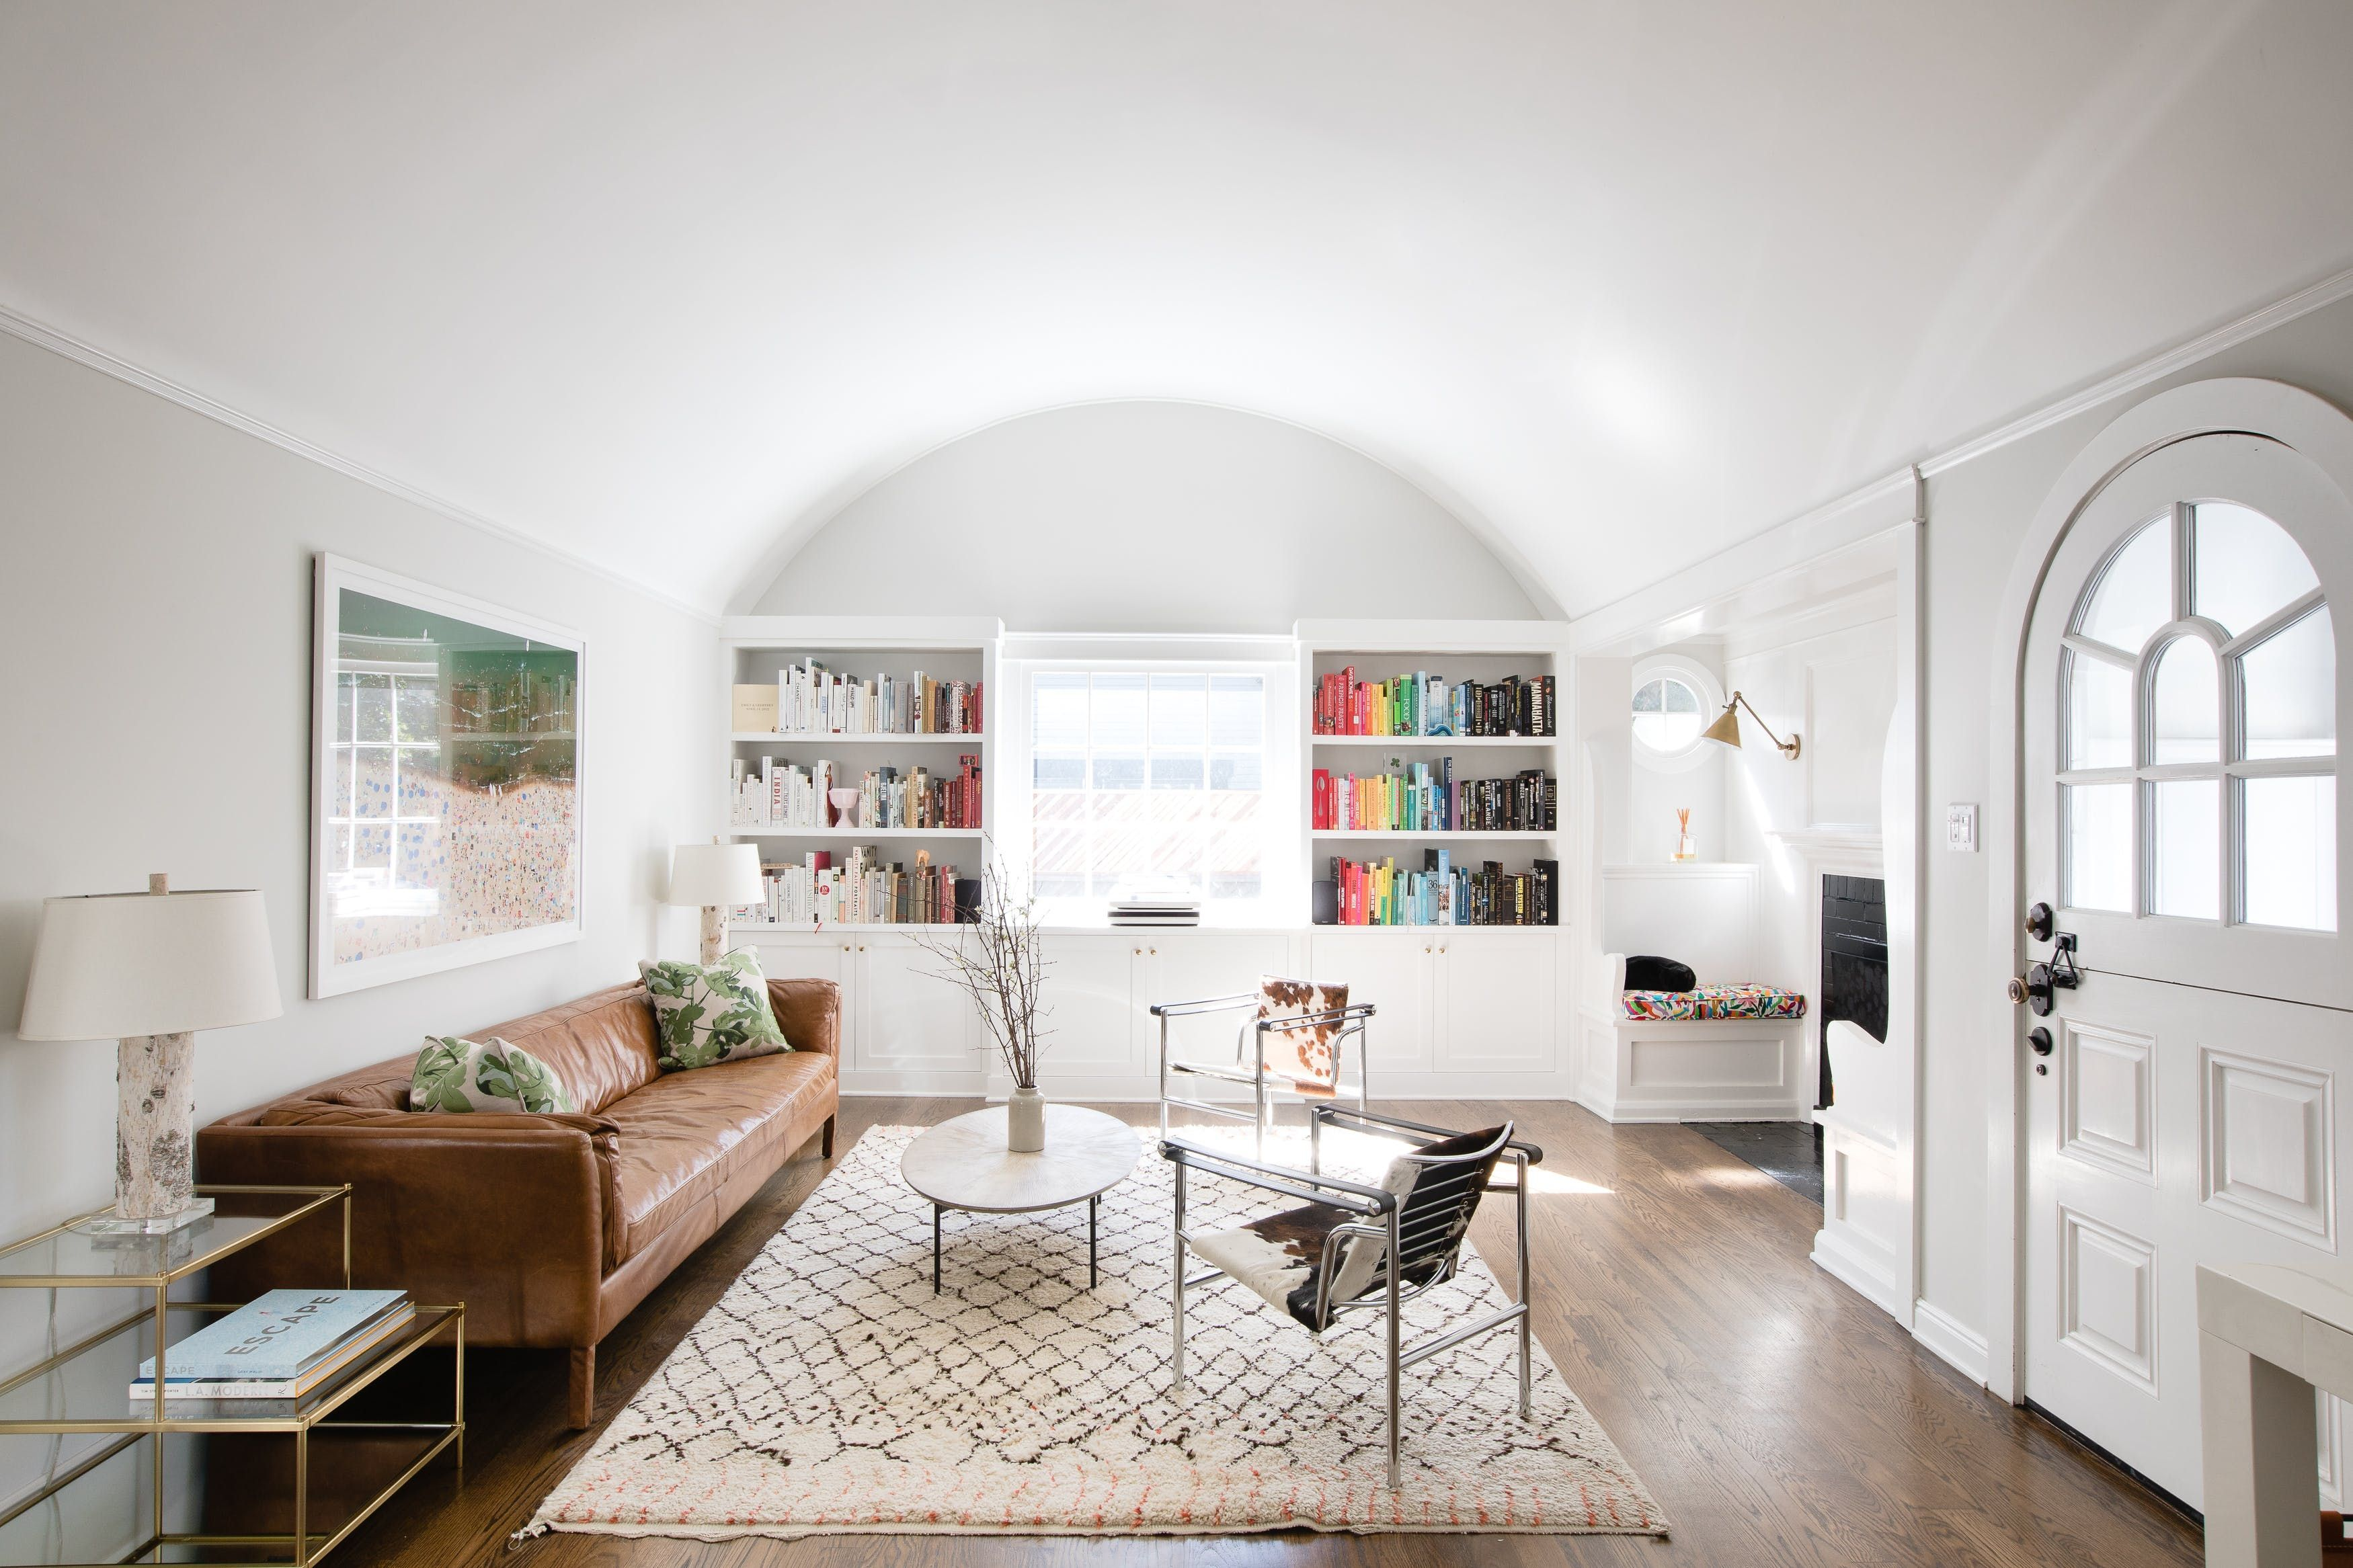 Cupcakes And Cashmere Founders Sunny Los Angeles Home To Build A